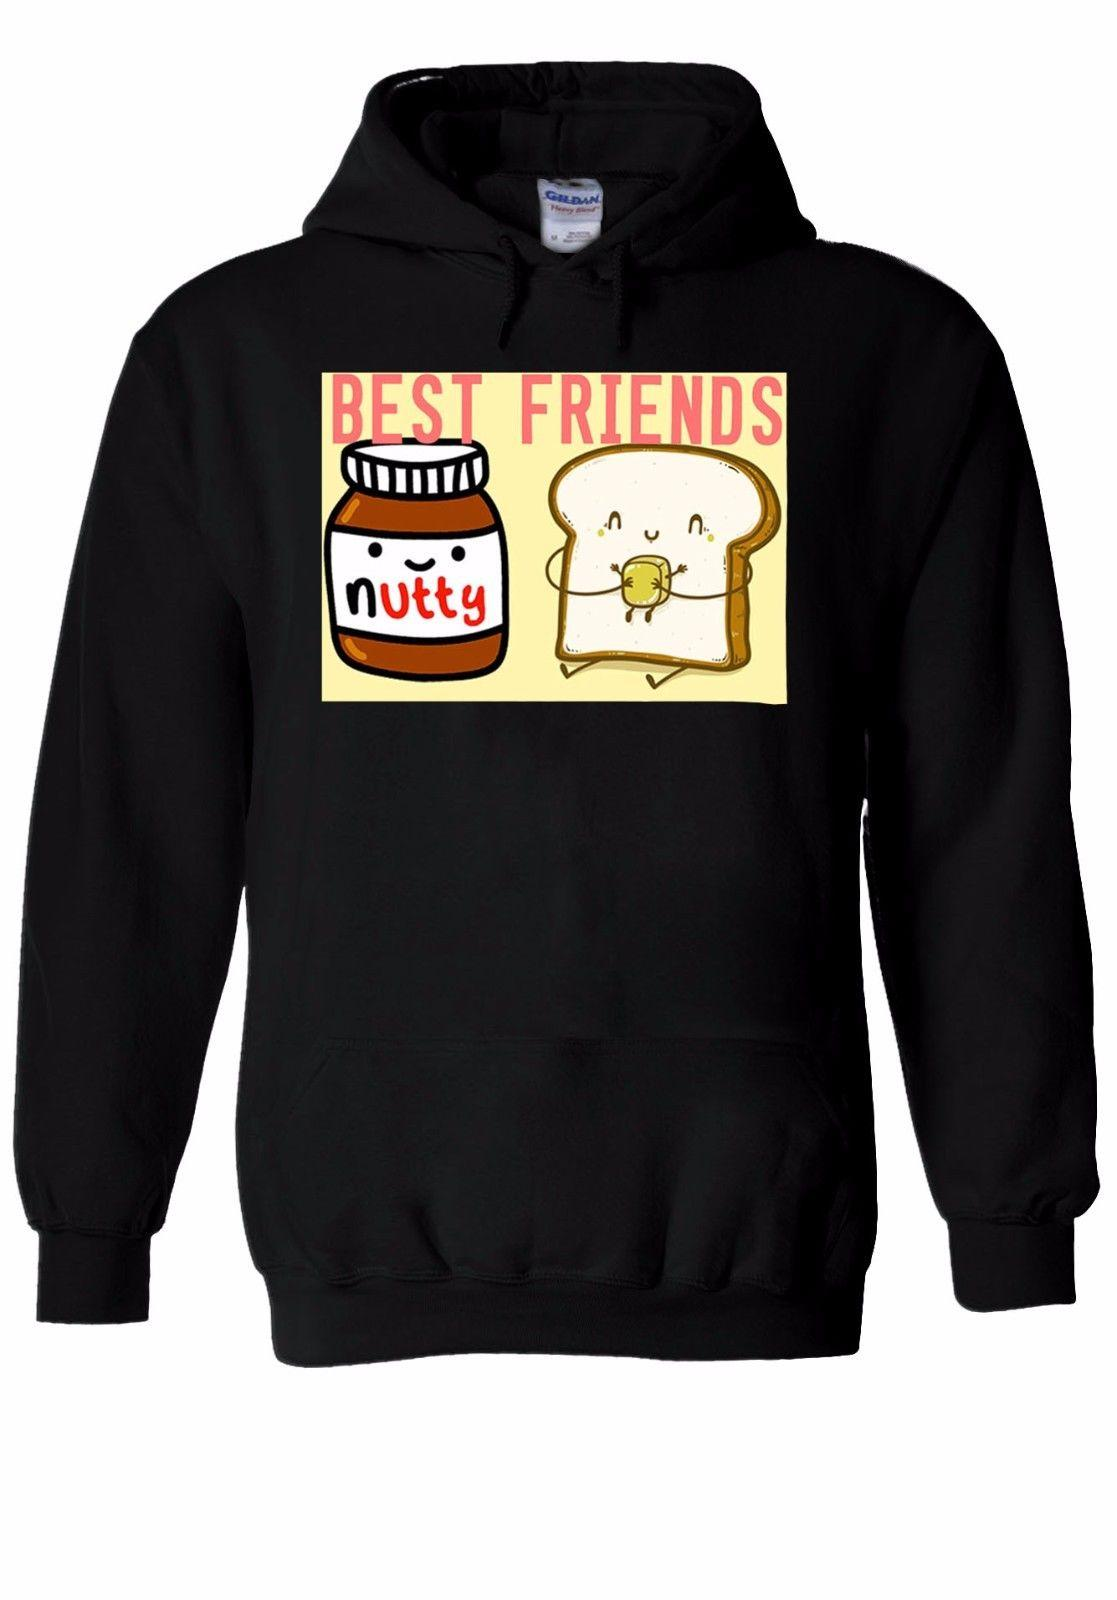 780a32ff best-friends-nutella-et-pain-sweat-capuche.jpg